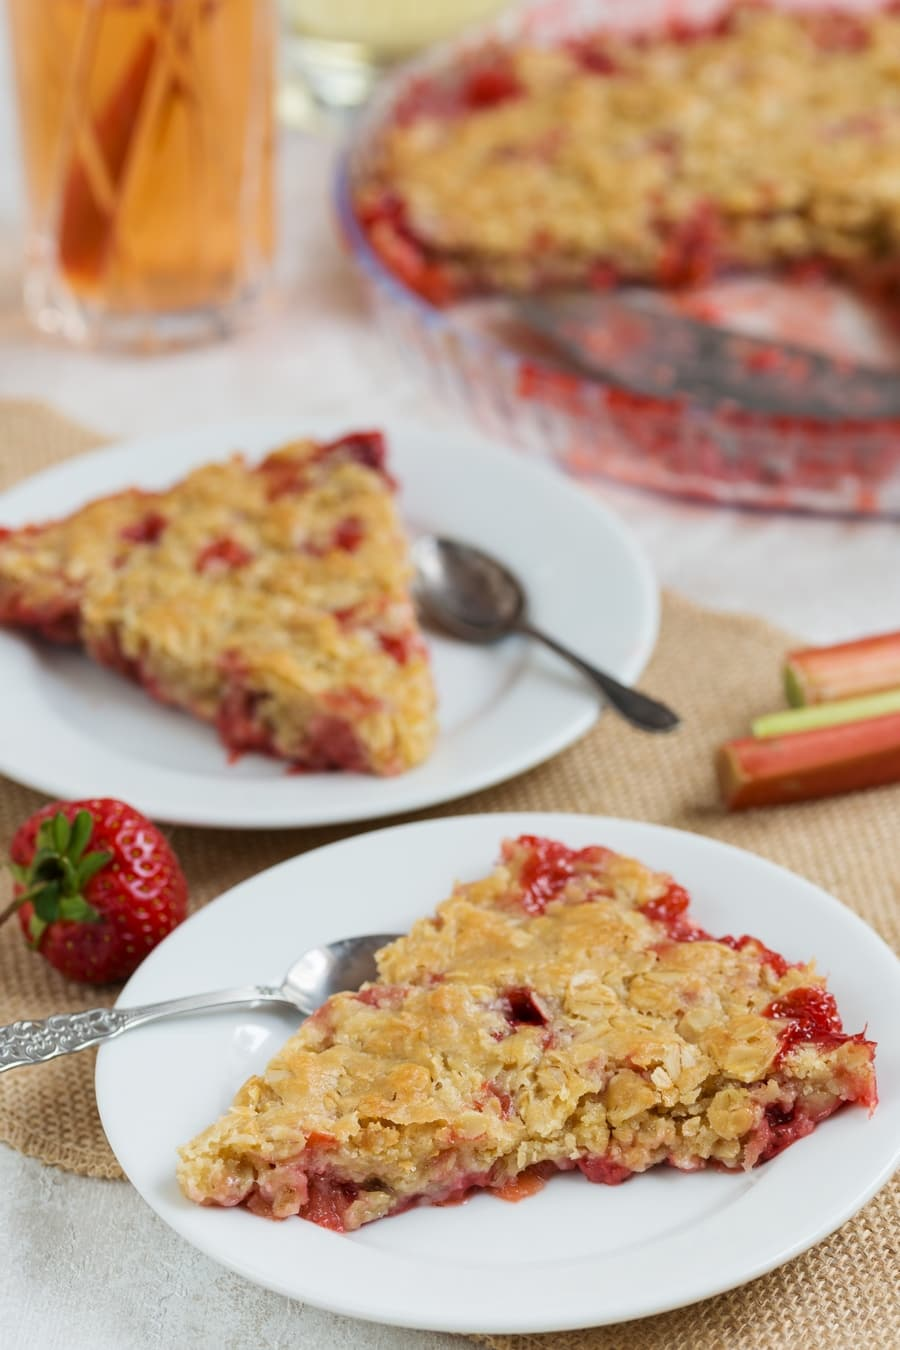 Two slices of strawberry rhubarb crisp.